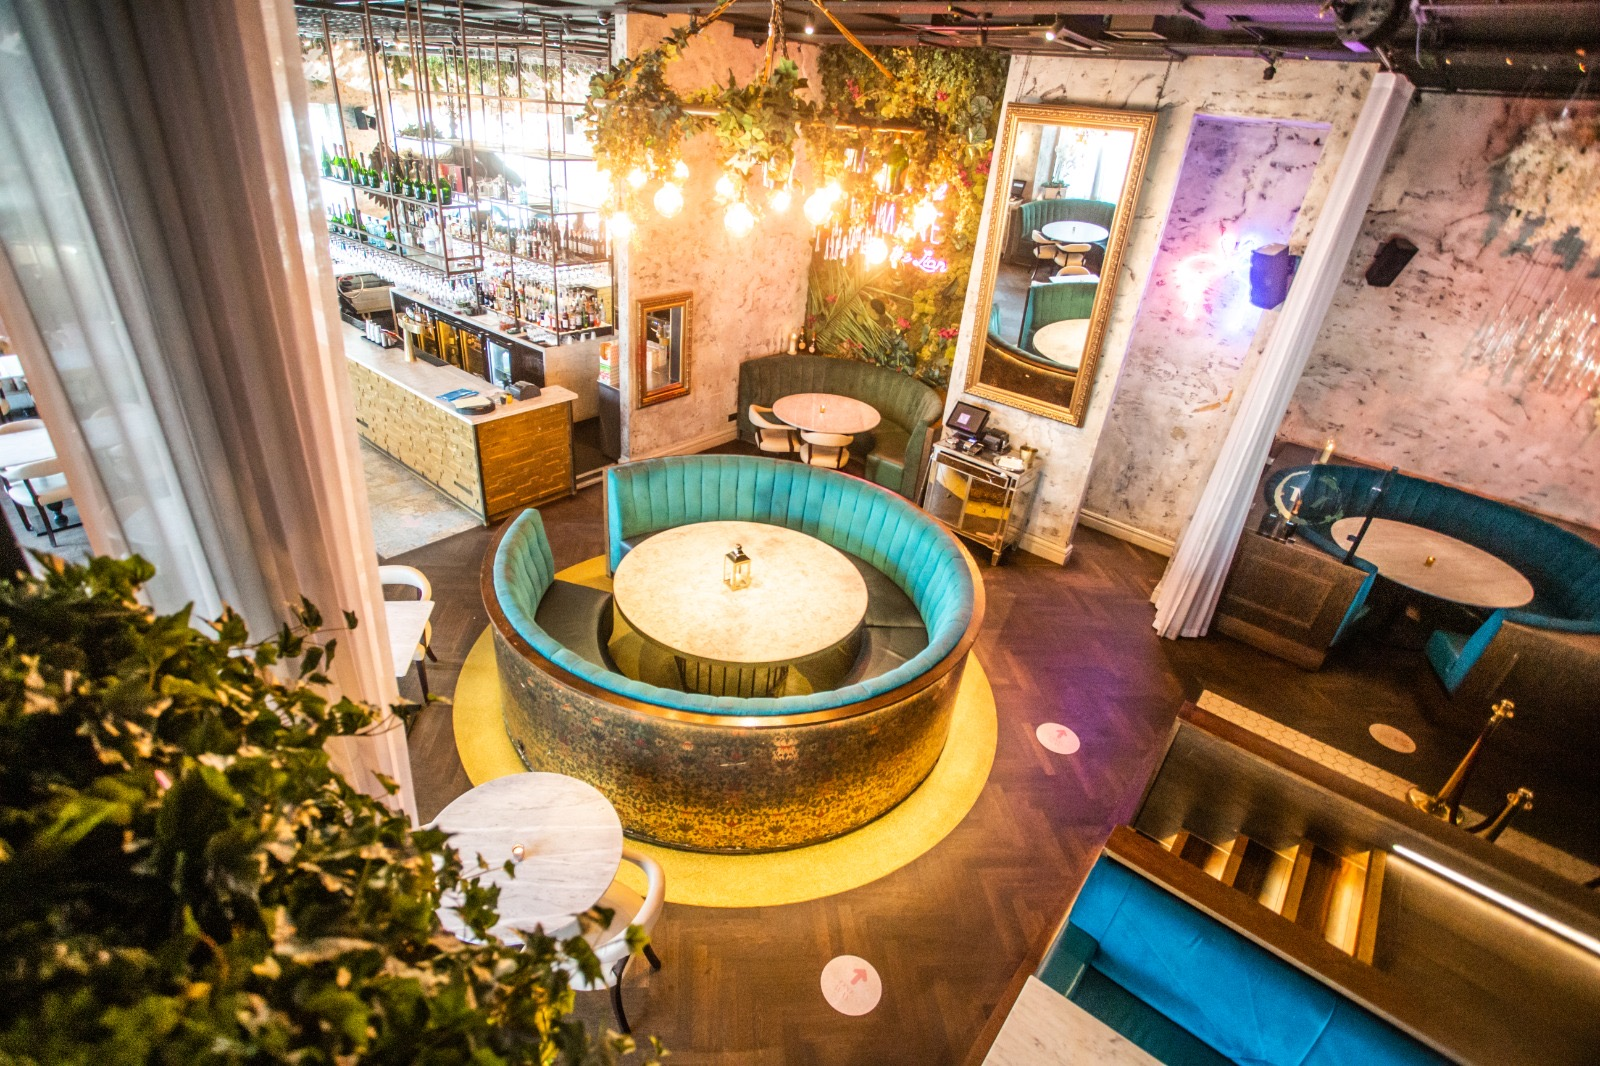 Menagerie Manchester - Still an awesome Instagram hot spot!